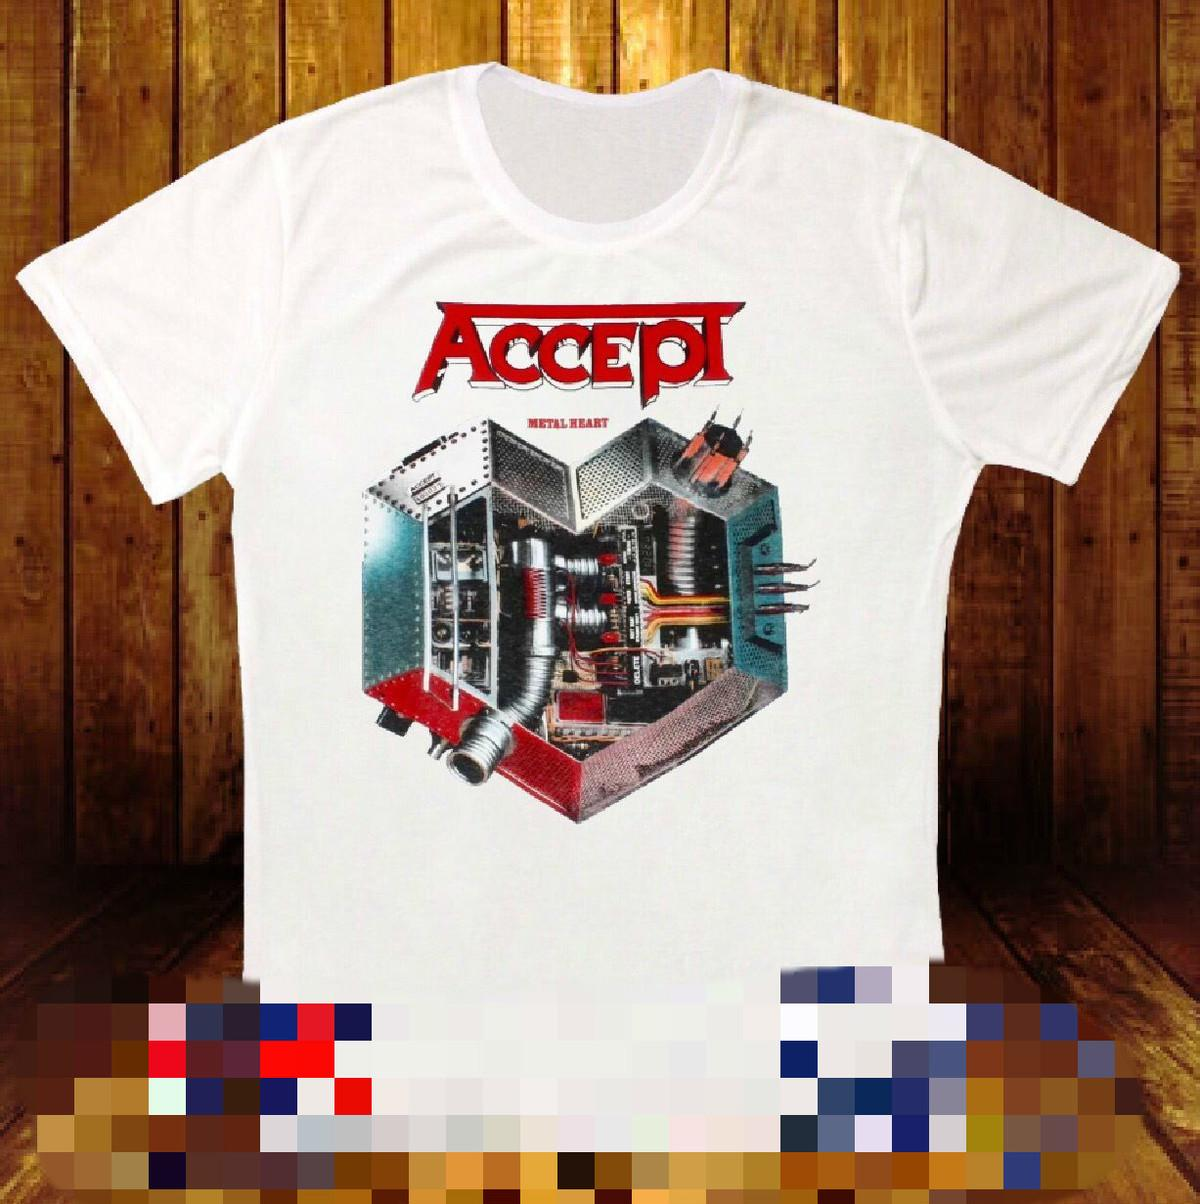 ACCEPT METAL HEART'85 UDO PESANTE IN METALLO BAND WILD RAGE WHITE T-SHIRT 254 Tops stampato T-shirt Hipster a T